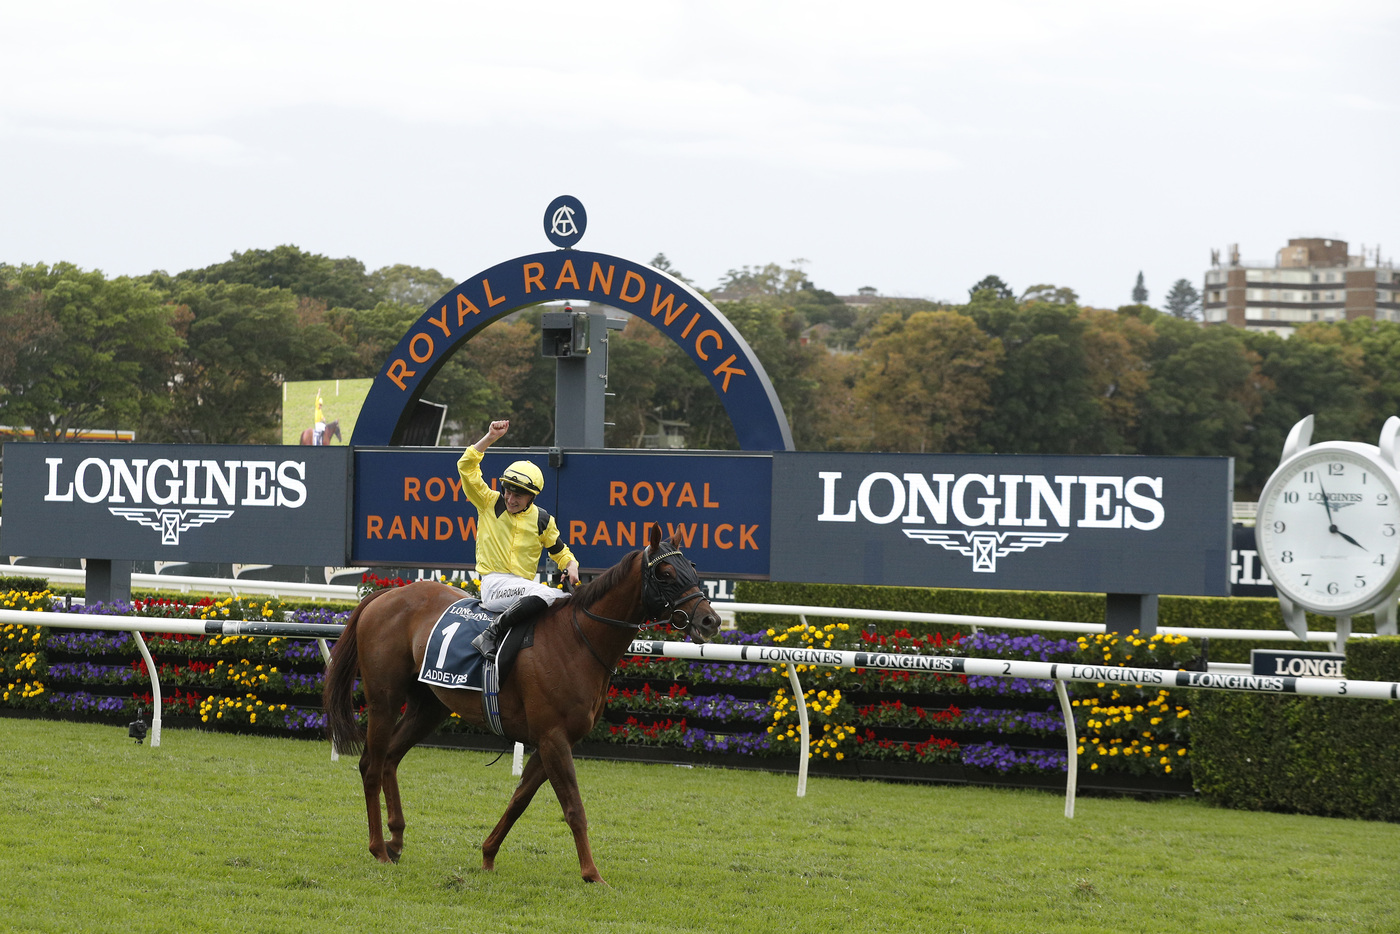 Longines Flat Racing Event: Longines timed the victory of Addeybb in the Longines Queen Elizabeth Stakes 1